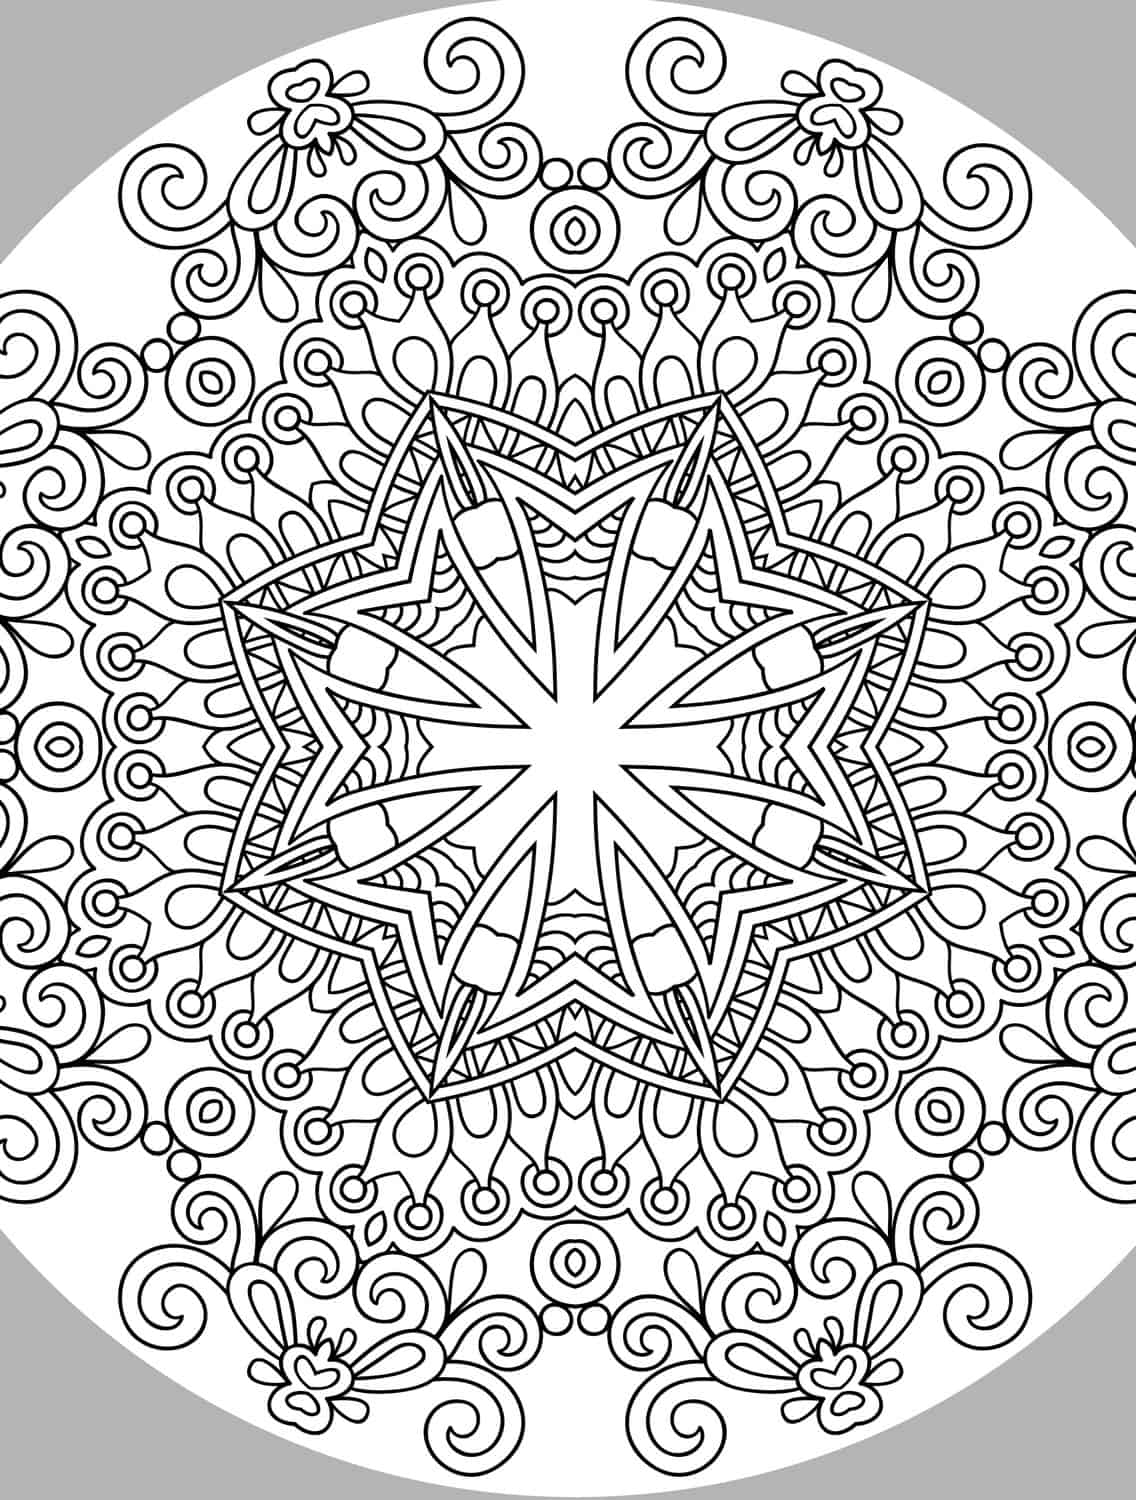 ho iday coloring pages - photo#29